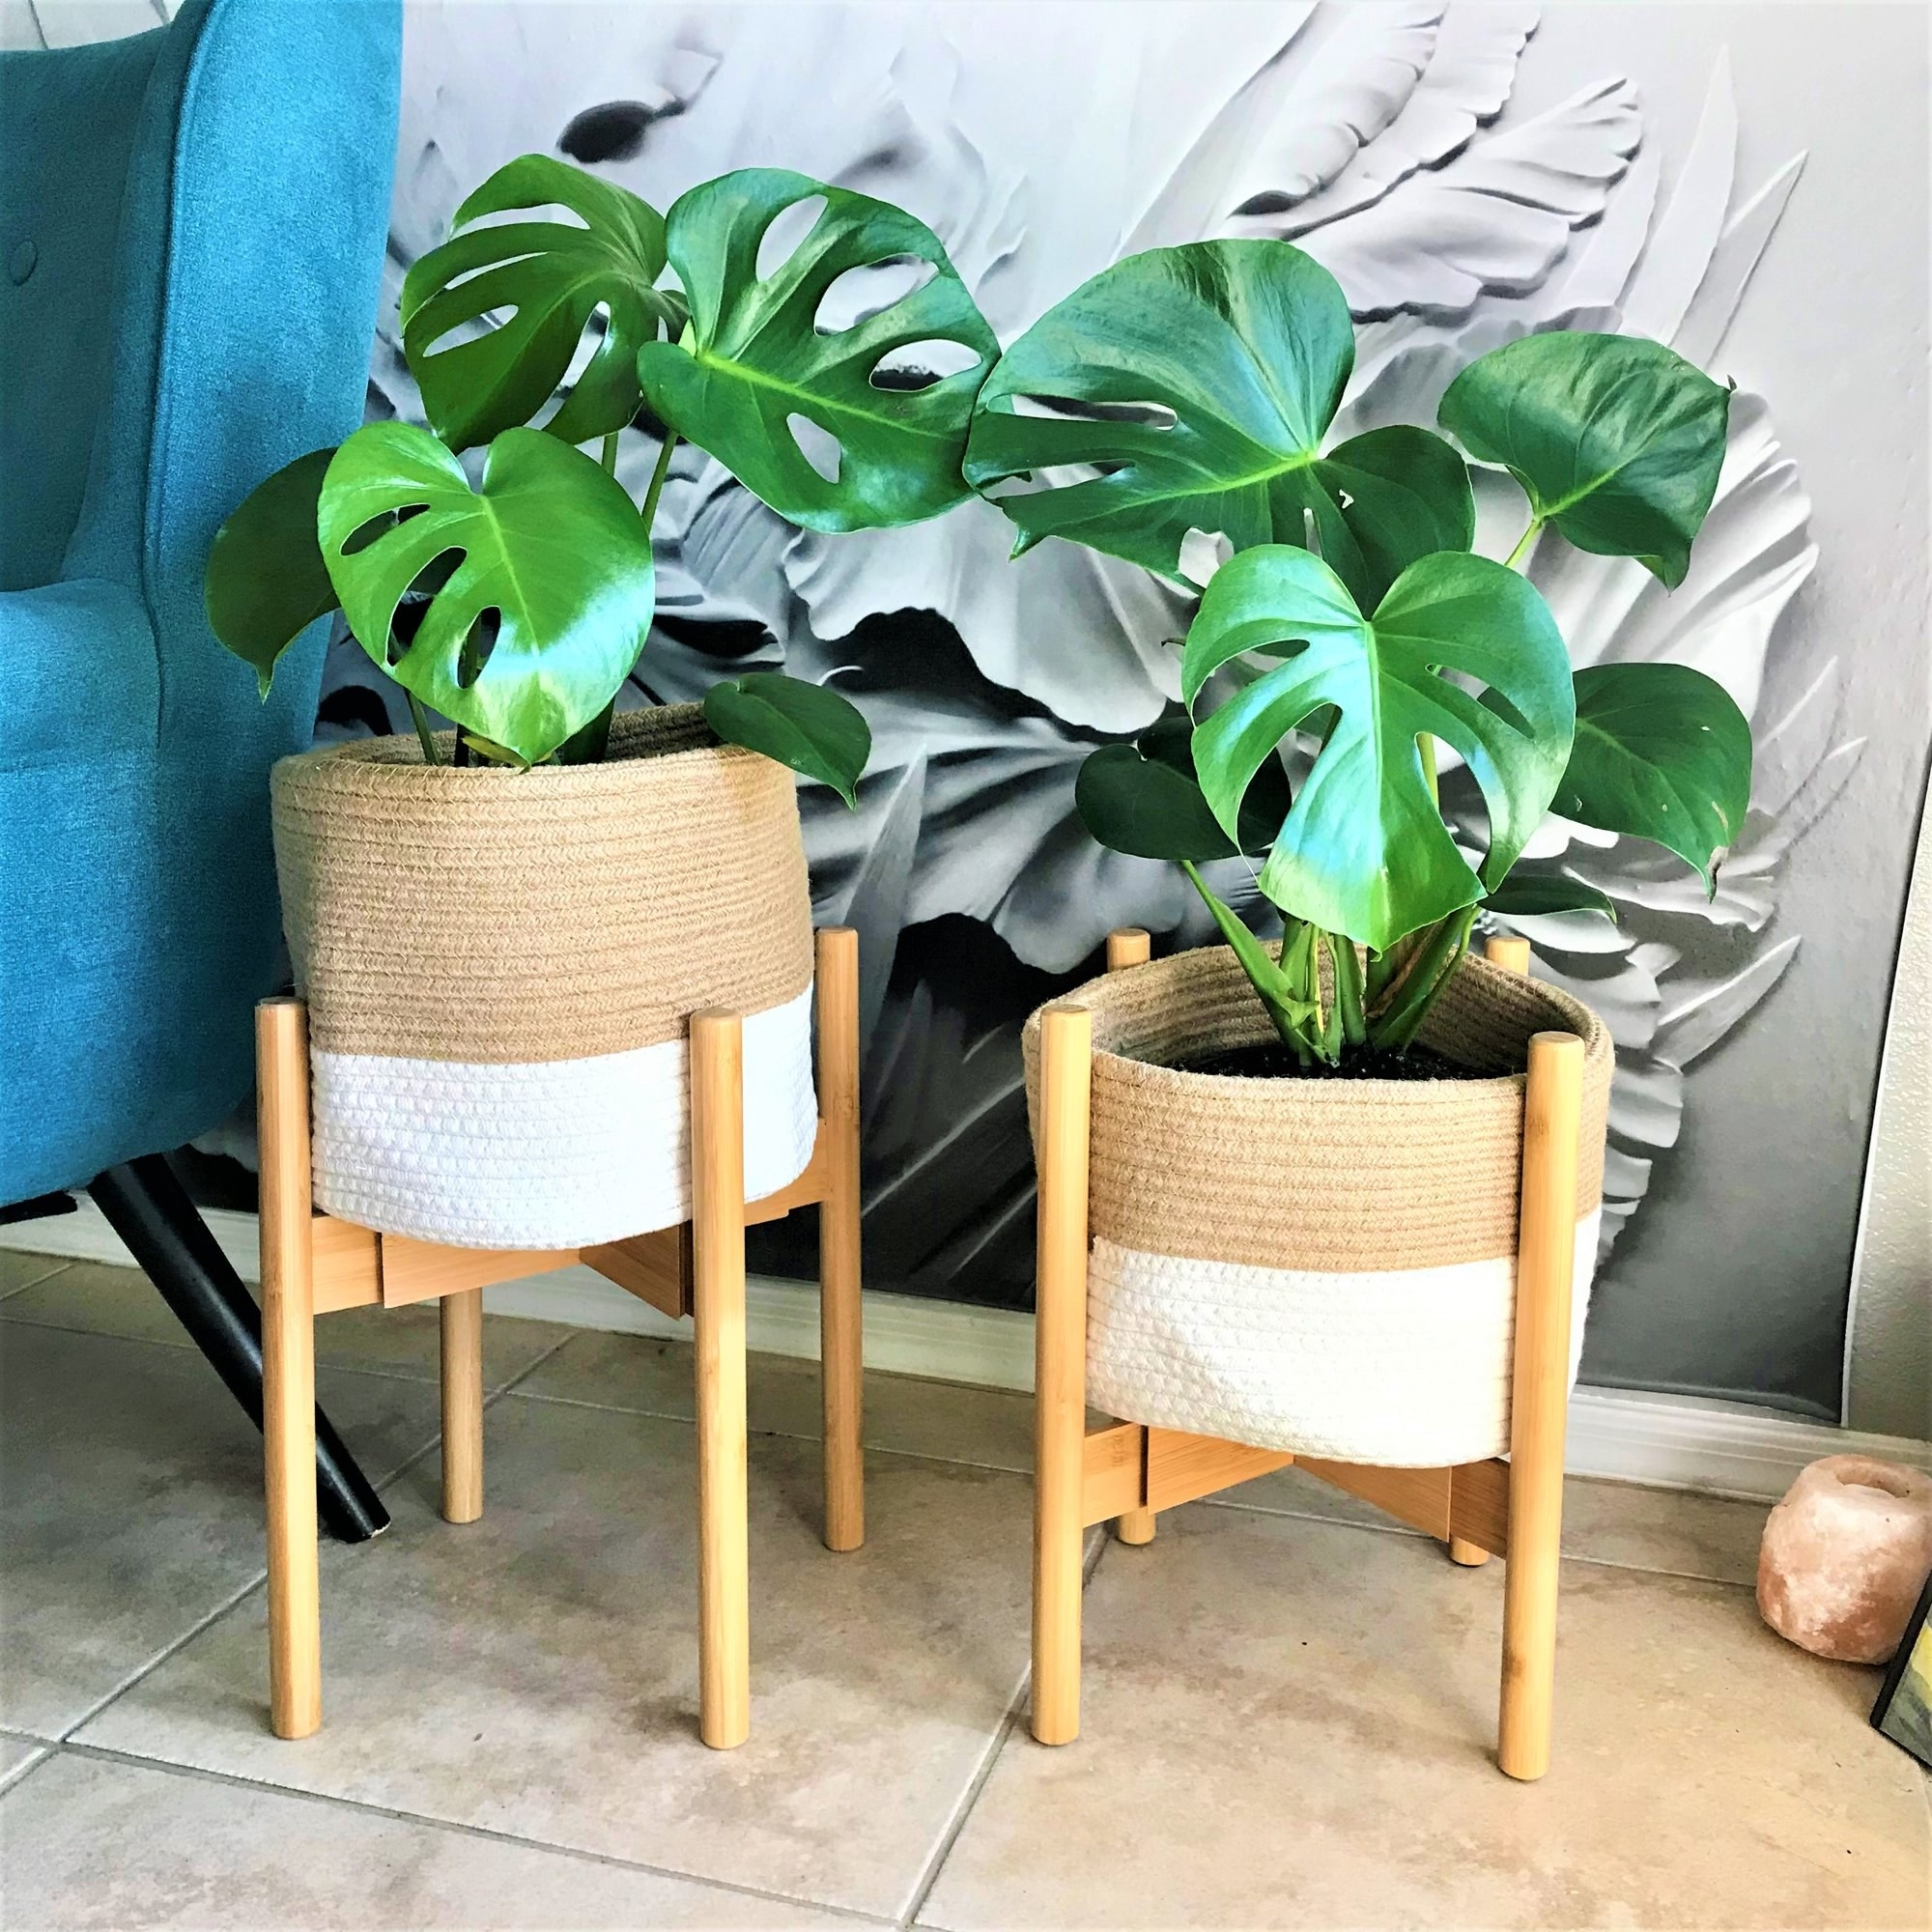 Wood plant stands holding plant